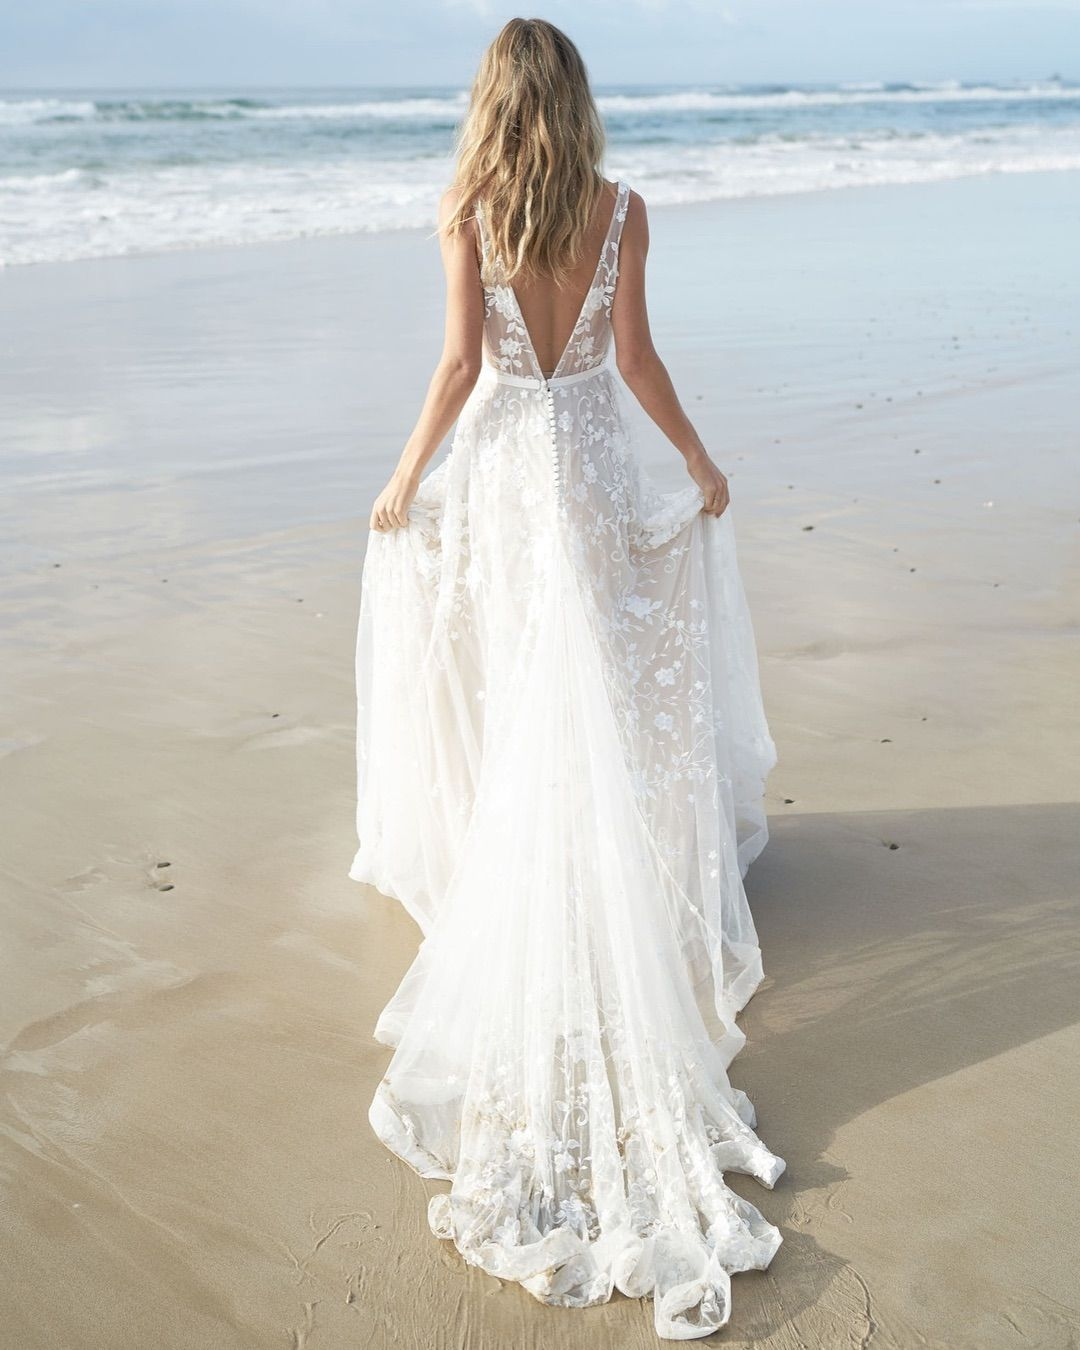 Vintage Wedding Dresses Bay Area: We Took The Wanderlust Collection Sea Side In The